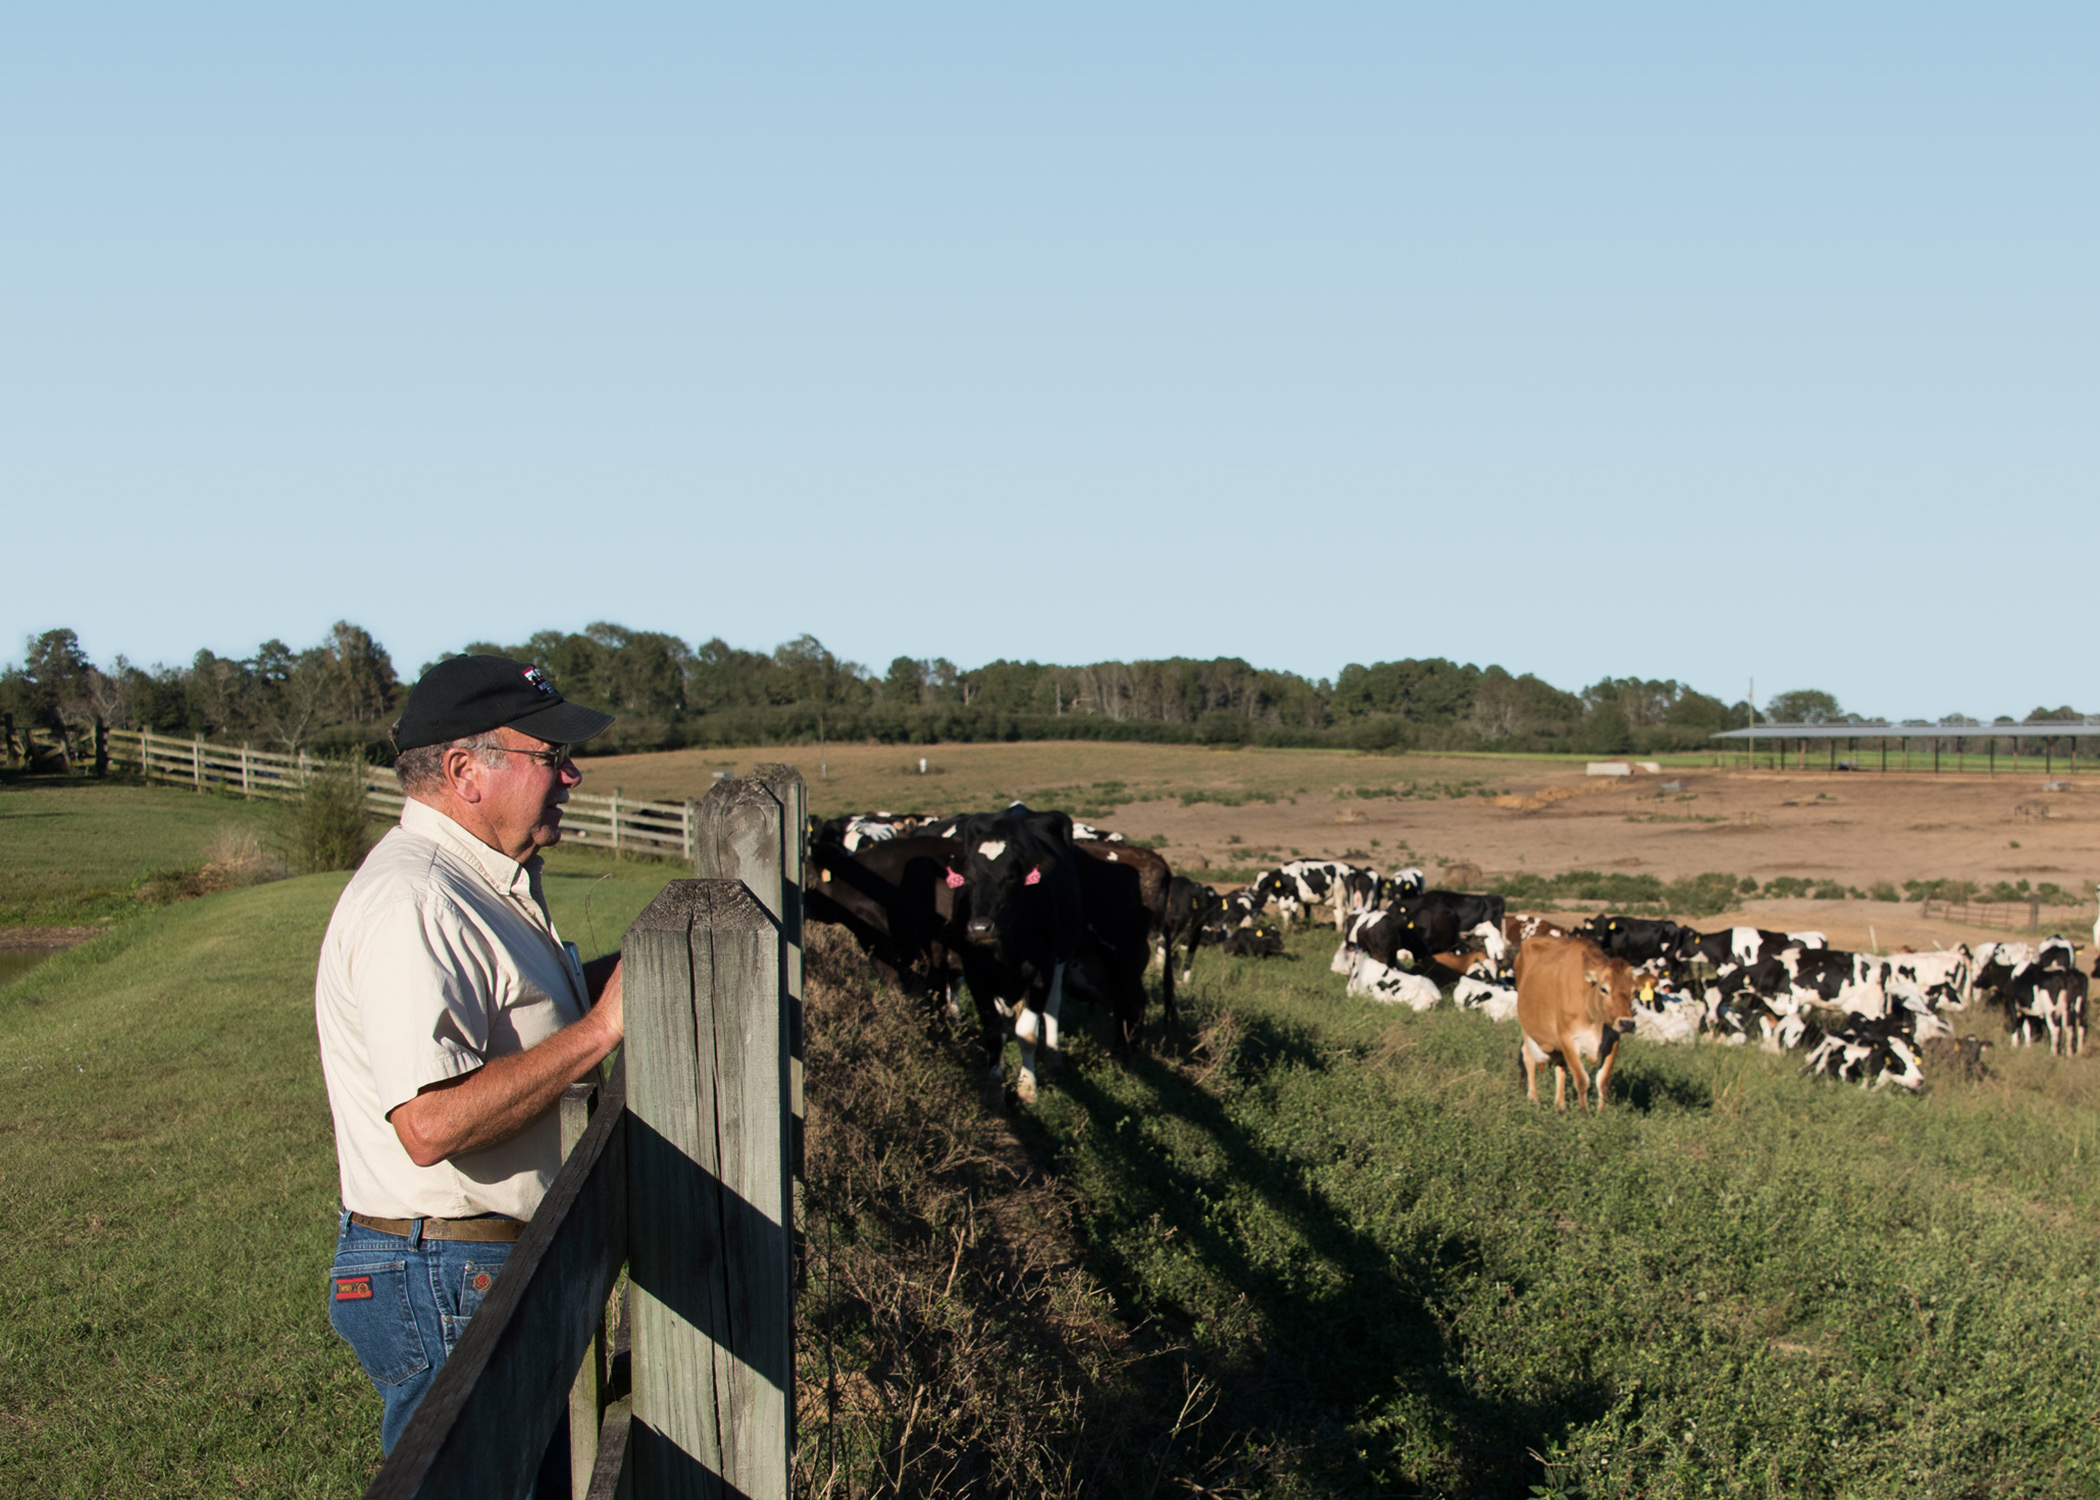 A man leaning on a wooden fence while gazing at a pasture filled with dairy cattle.